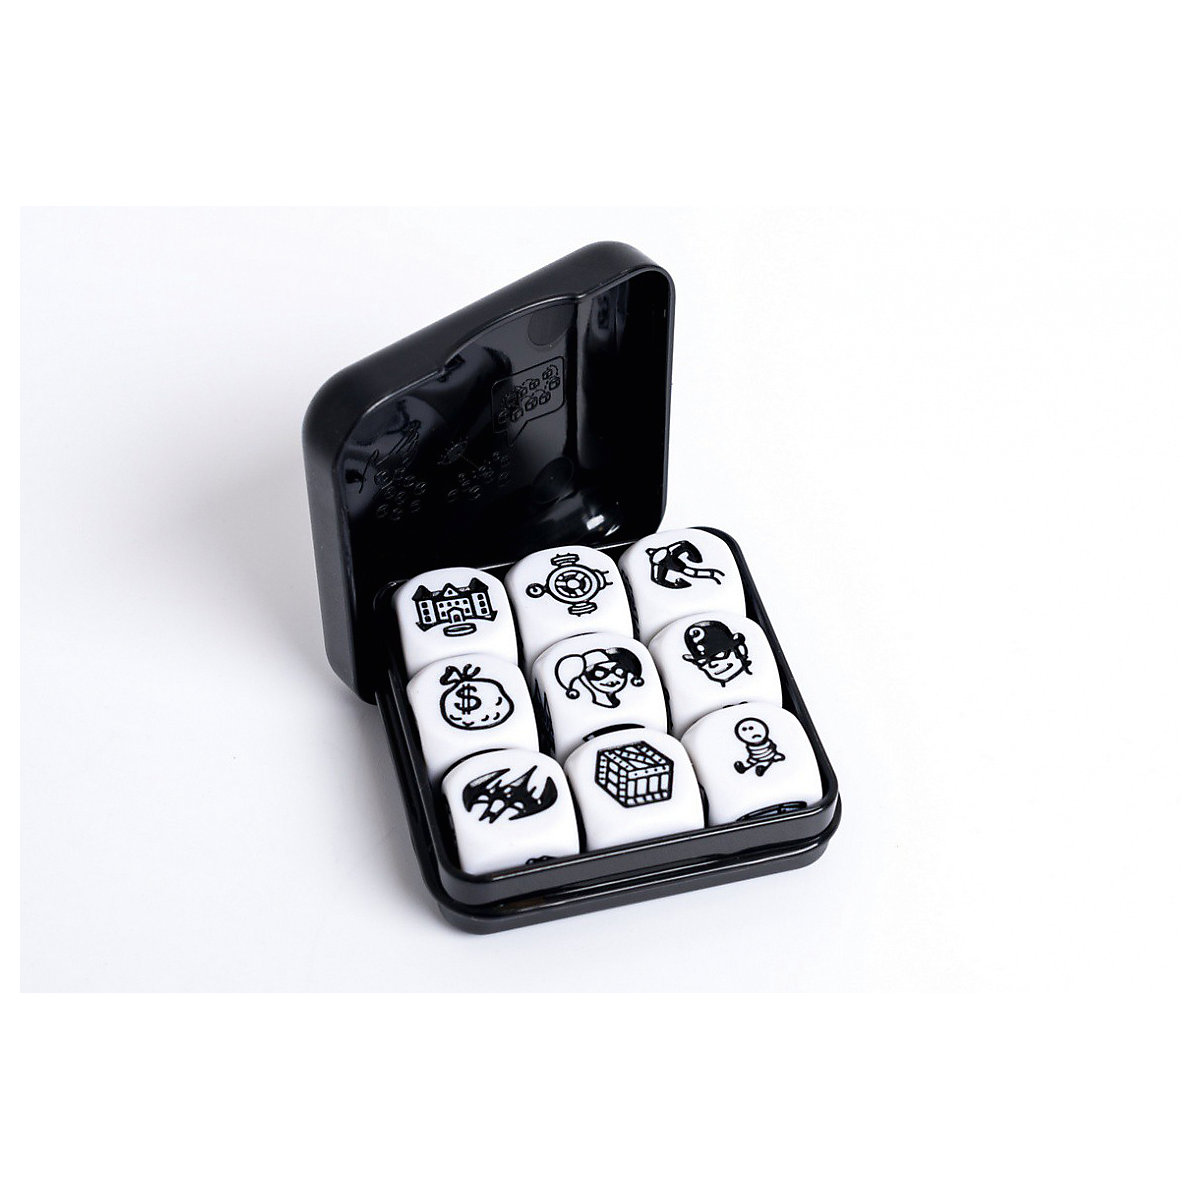 Rory's Story Cubes Magic Cubes 5348107 cube puzzle development boy girl boys girls game play toy toys iq puzzle puzzles 8271209 еducational toys toy сactus game games play boy boys girl girls puzzle